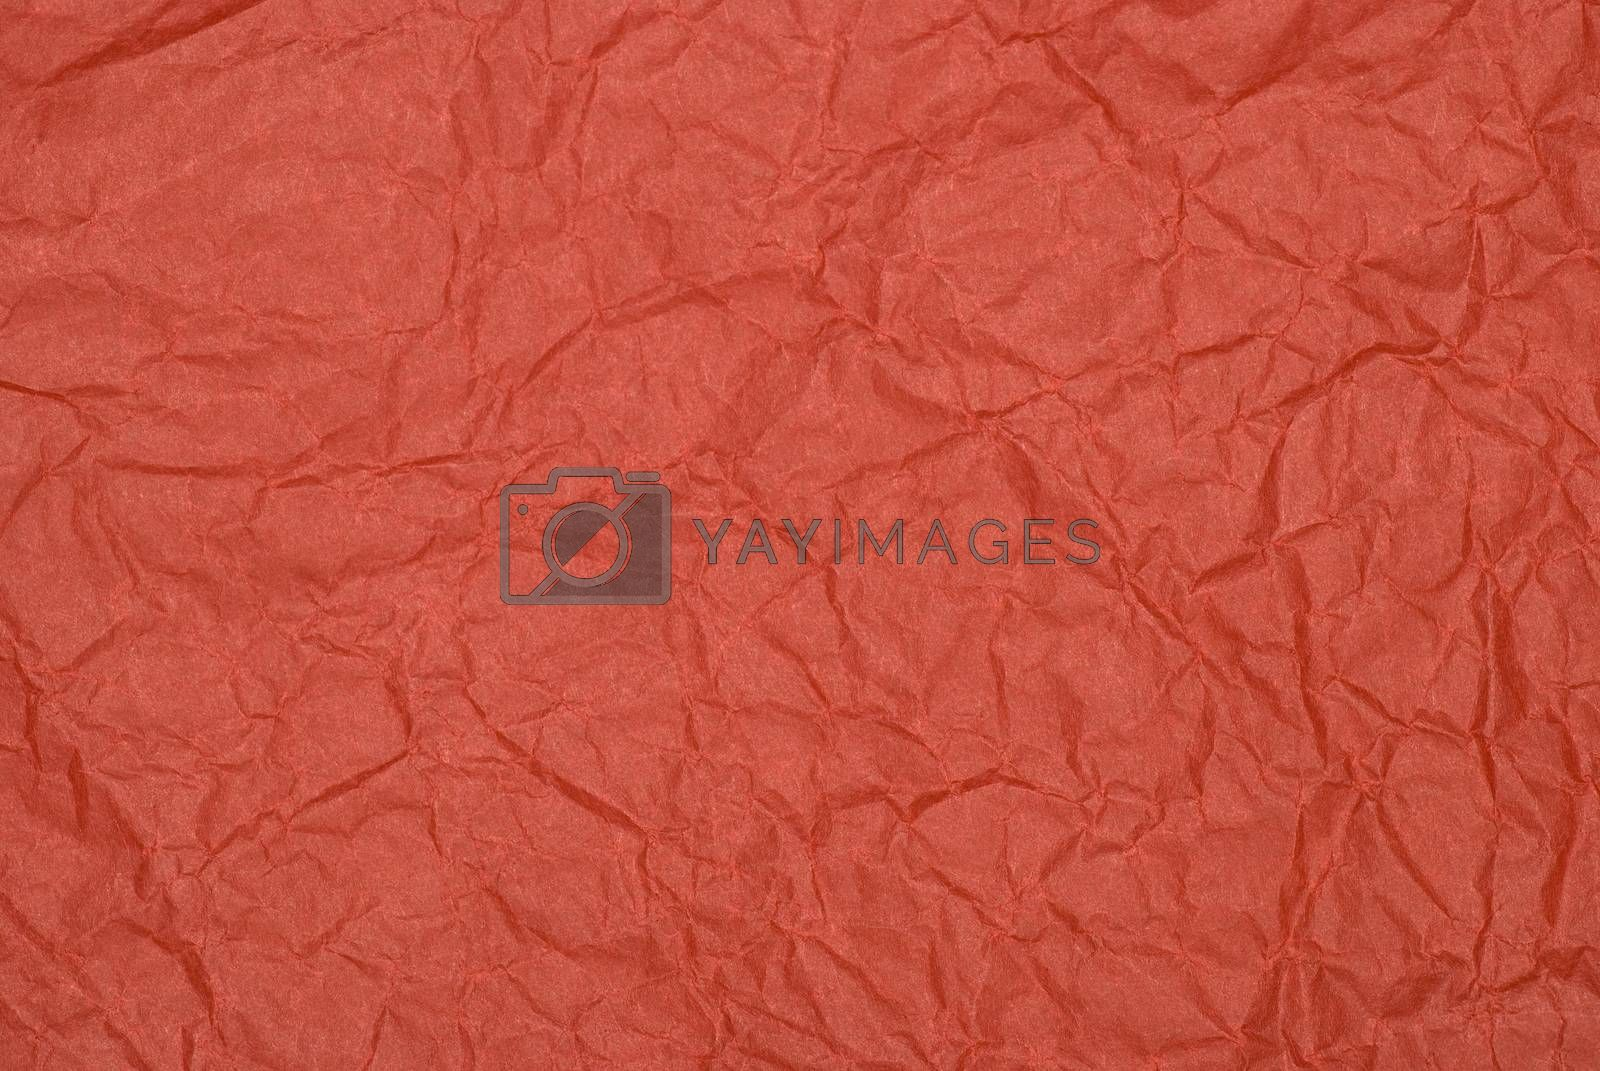 Crumpled red tissue paper background.